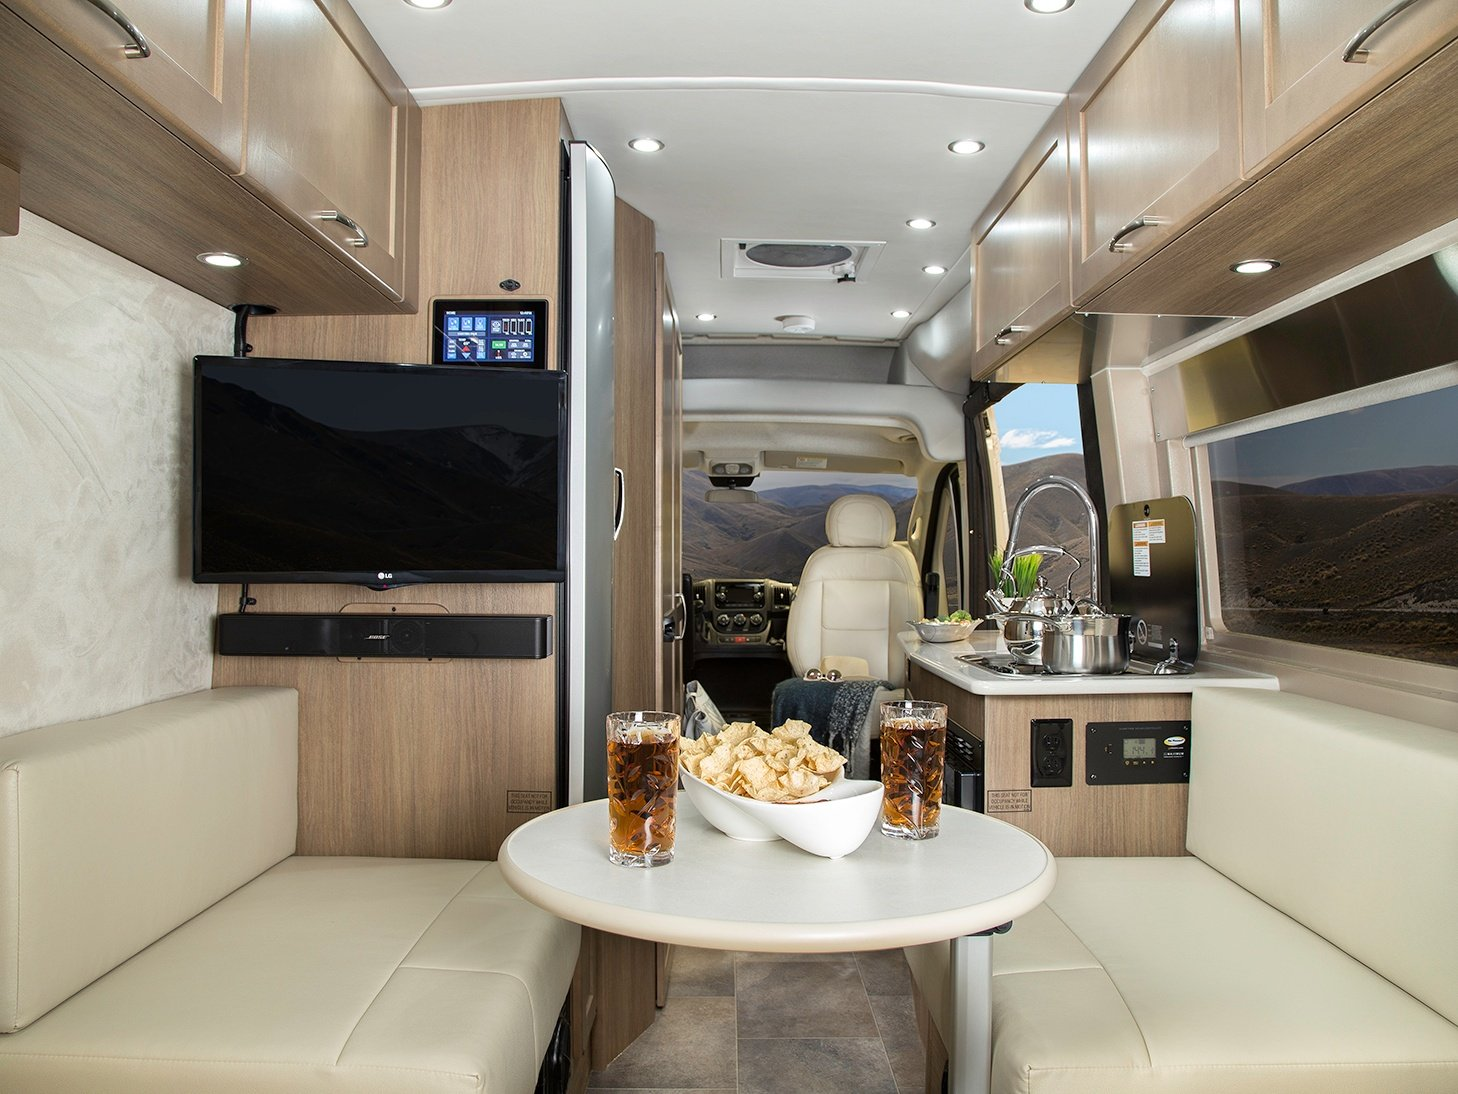 Interior of Pleasure-Way Lexor TS Class B Motorhome